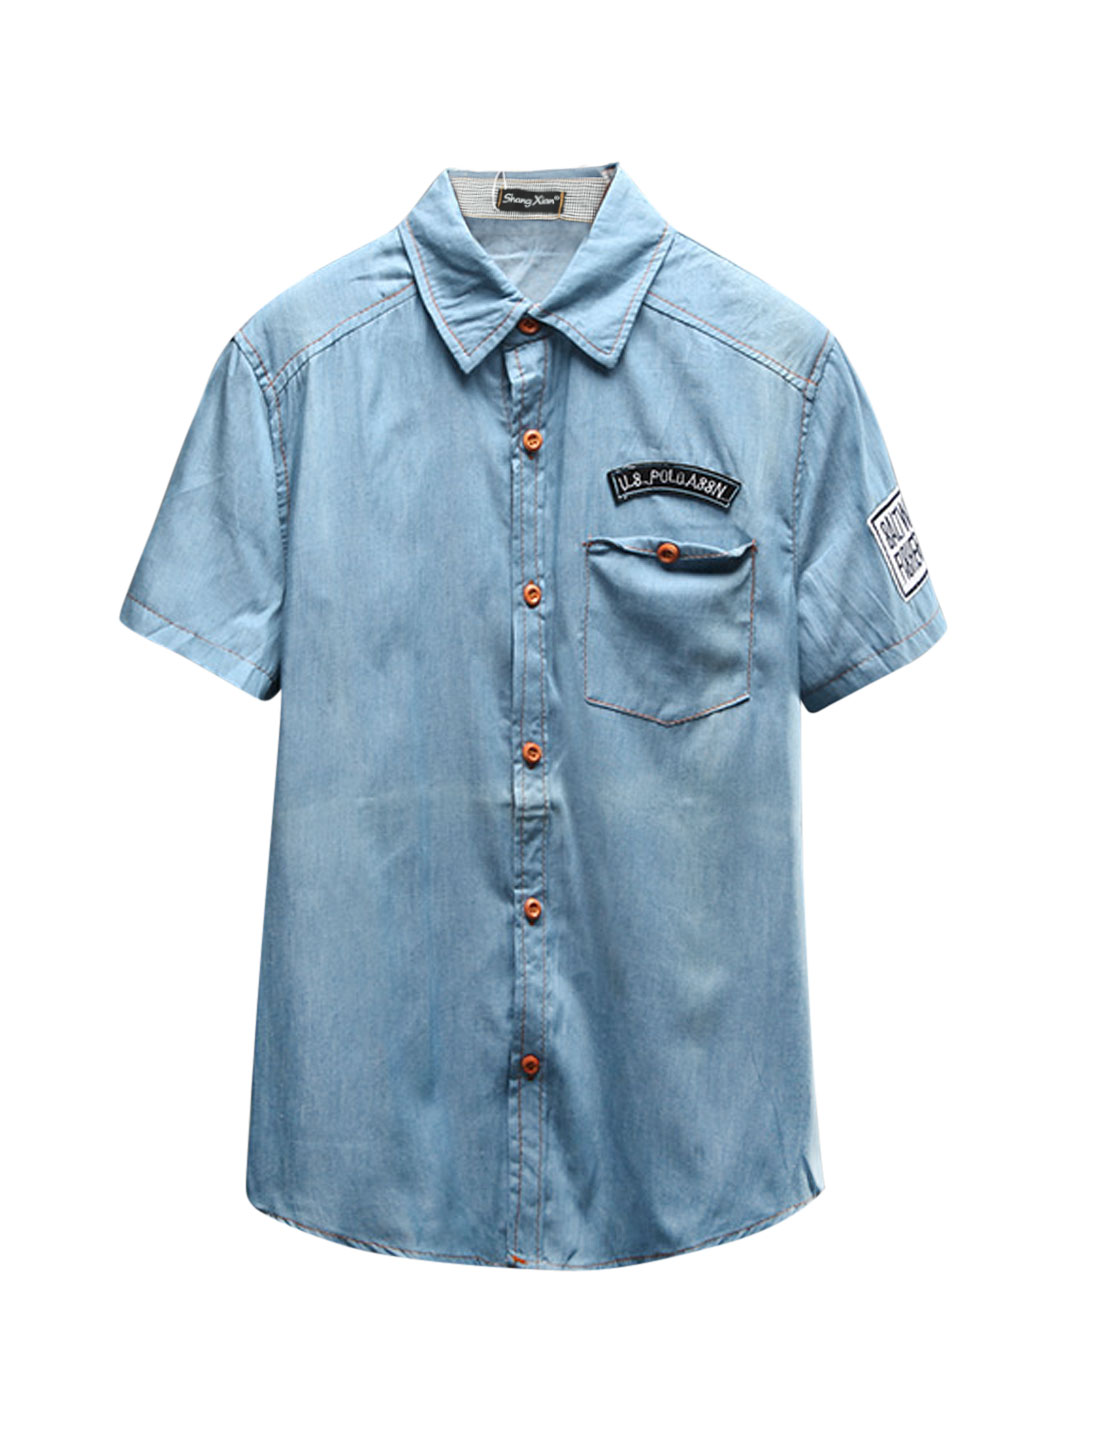 Man Numbers Letters Stitching One Chest Pocket Denim Casual Shirt Light Blue S